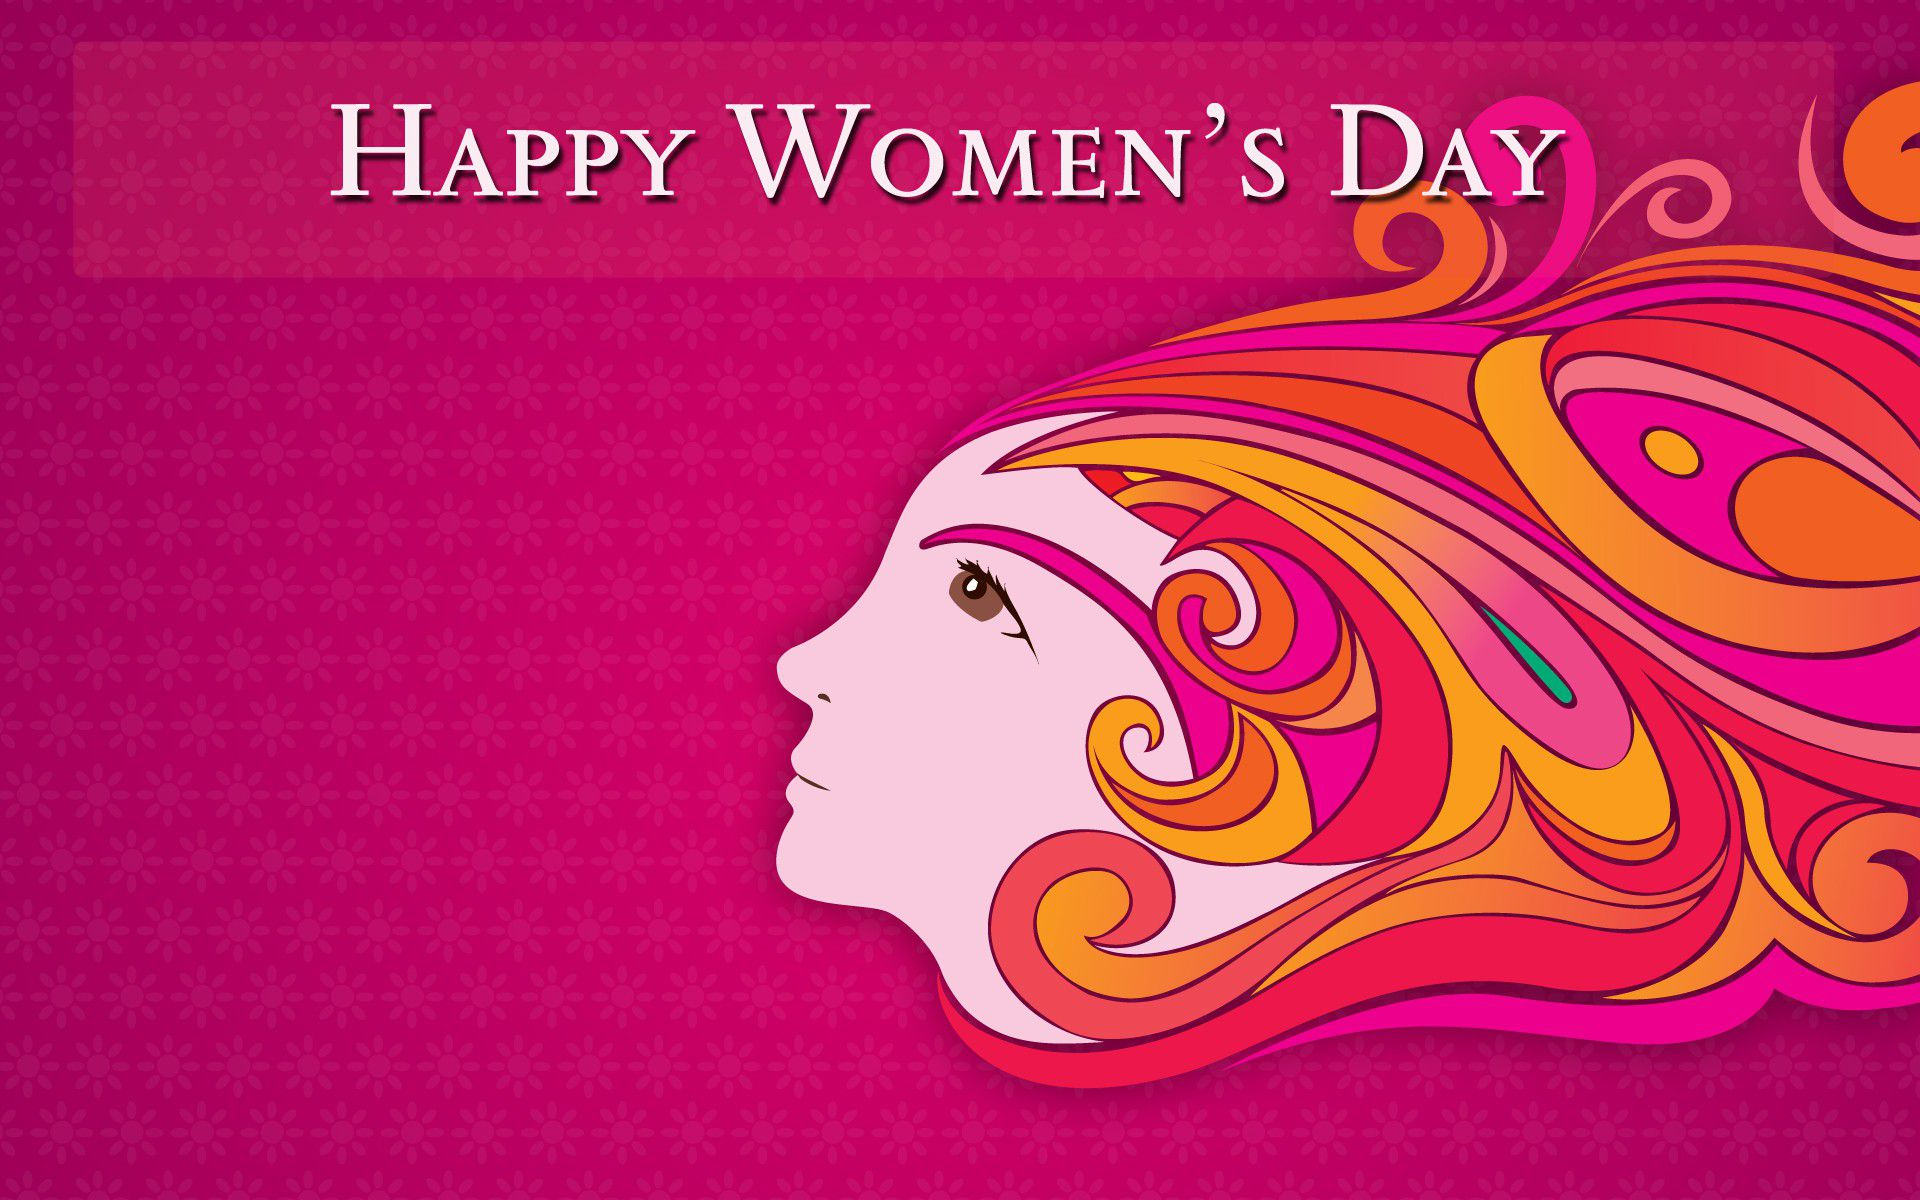 Top 100 Happy Womens Day HD Wallpapers Images 2020 1920x1200